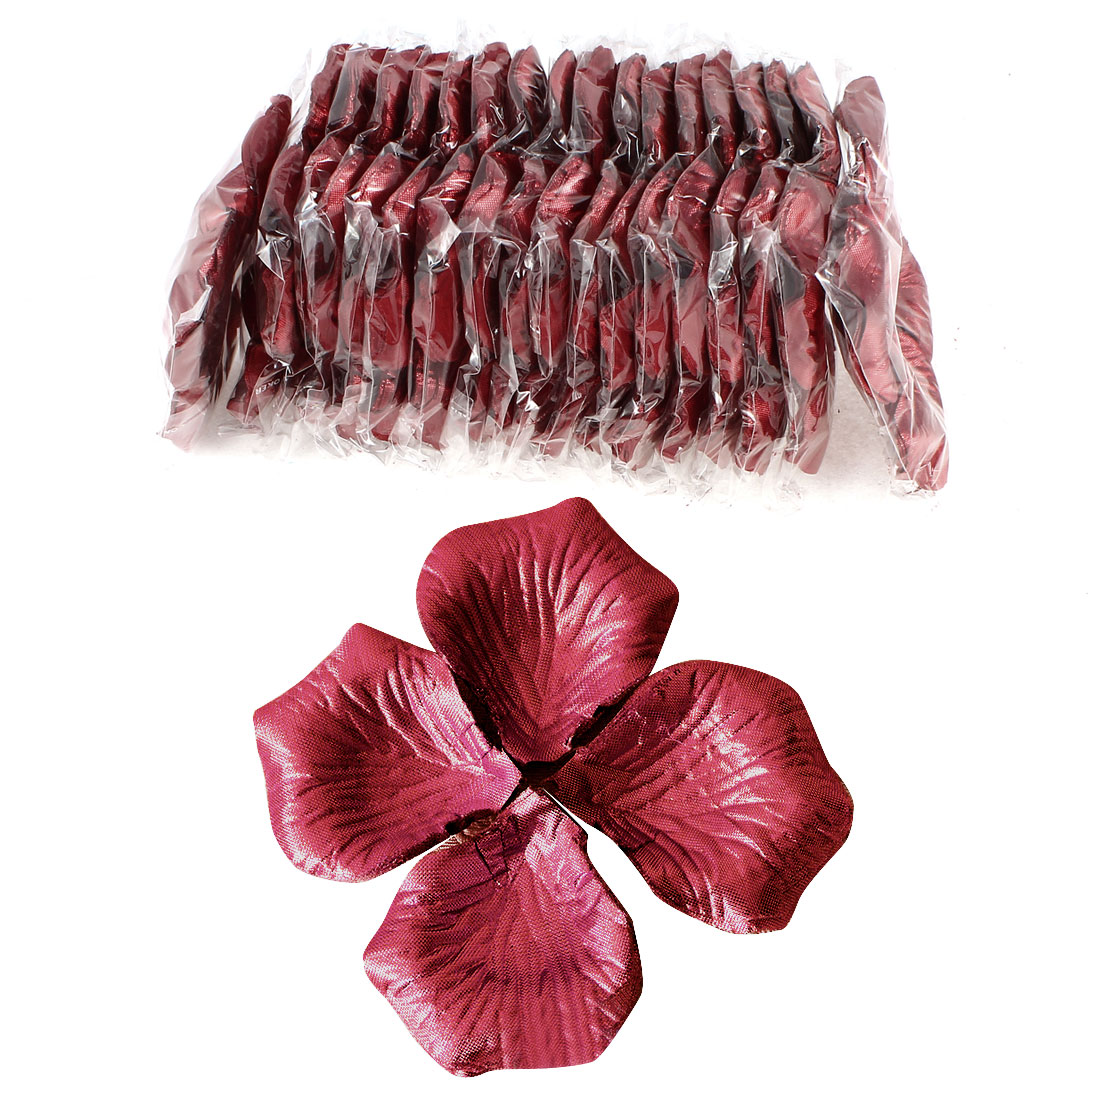 1000 Pcs Dark Red Artificial Silk Flower Rose Petals Wedding Bridal Party Decorations